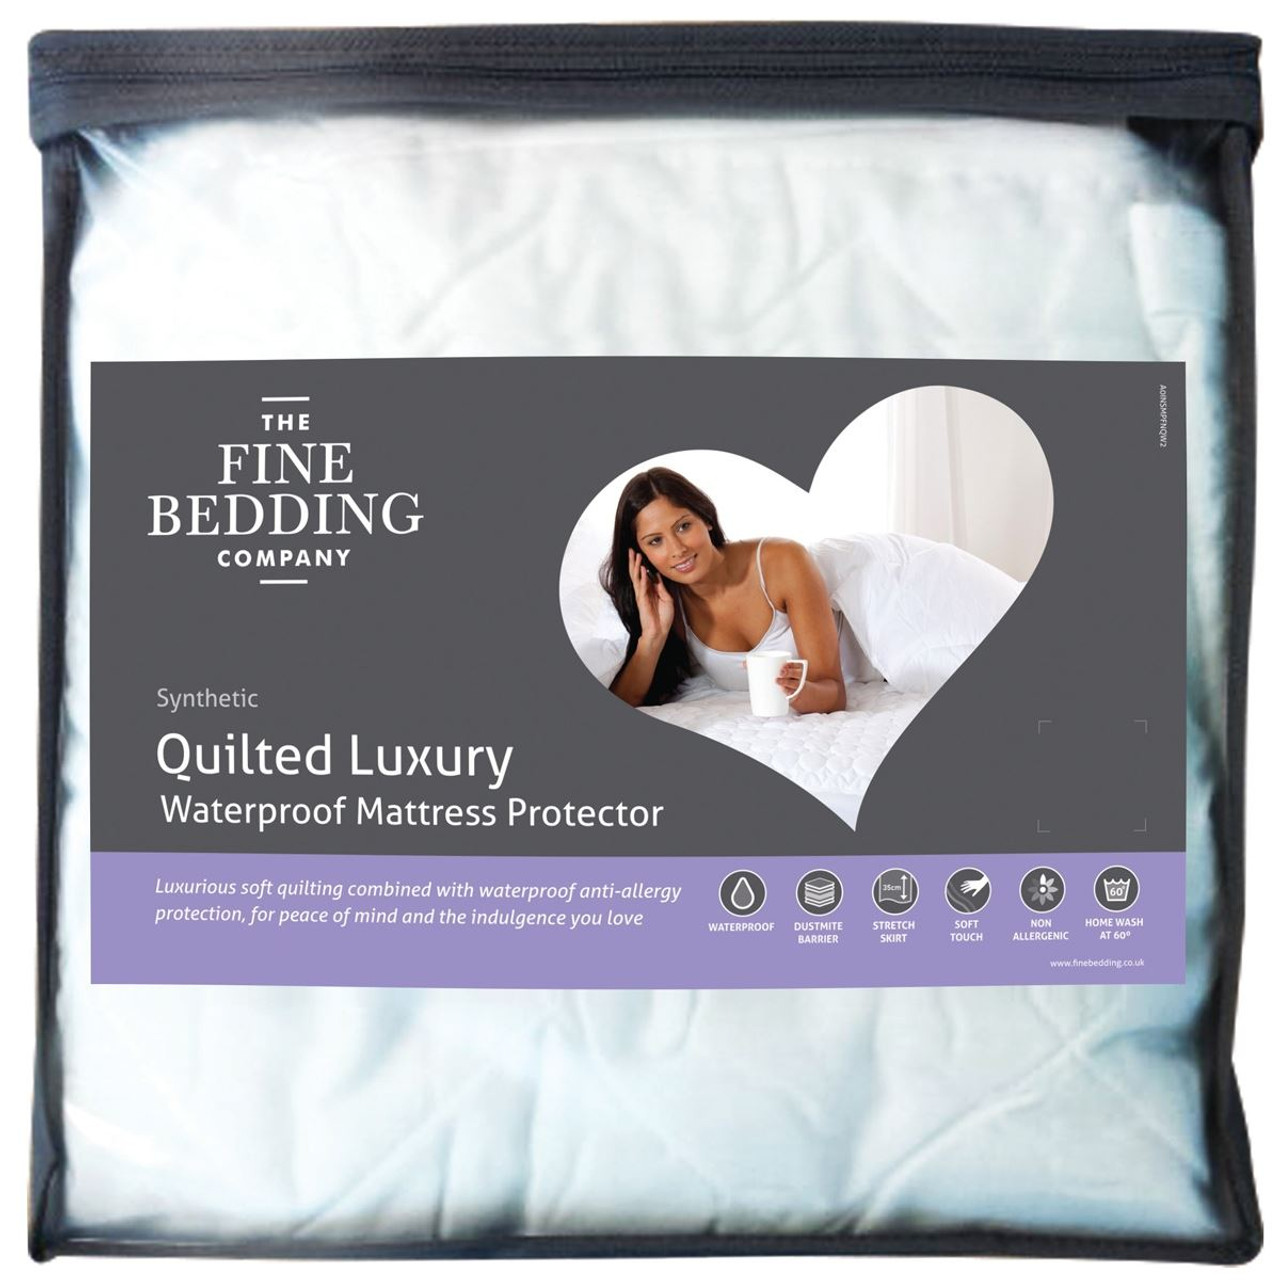 The Fine Bedding Company Quilted Luxury Waterproof Mattress Protector